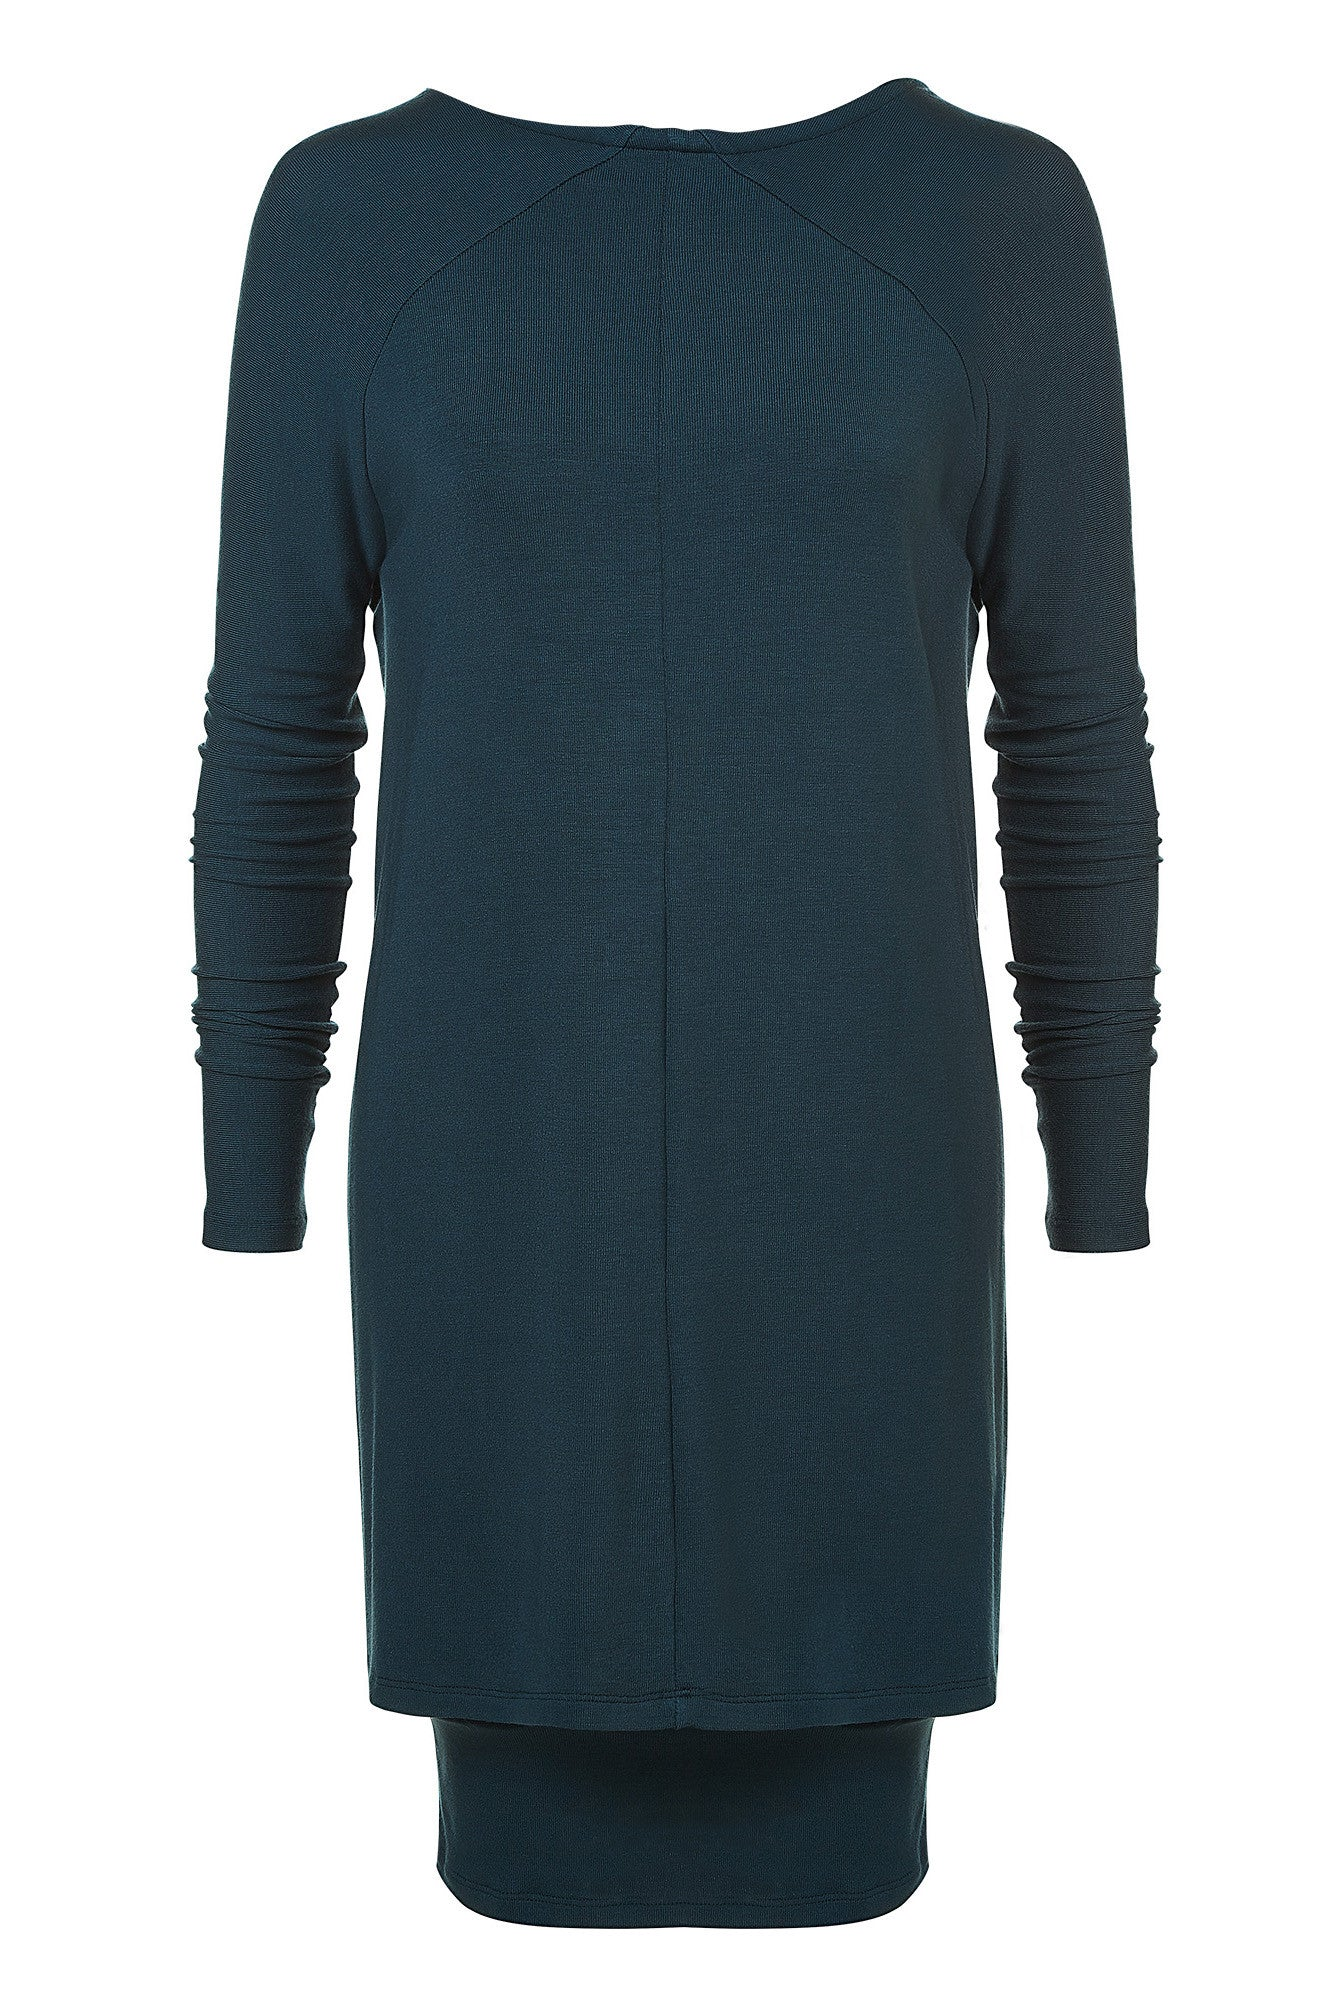 Usman Dress by Melow, reversible, double-layered, jersey, sizes XS to XXL, made in Montreal.